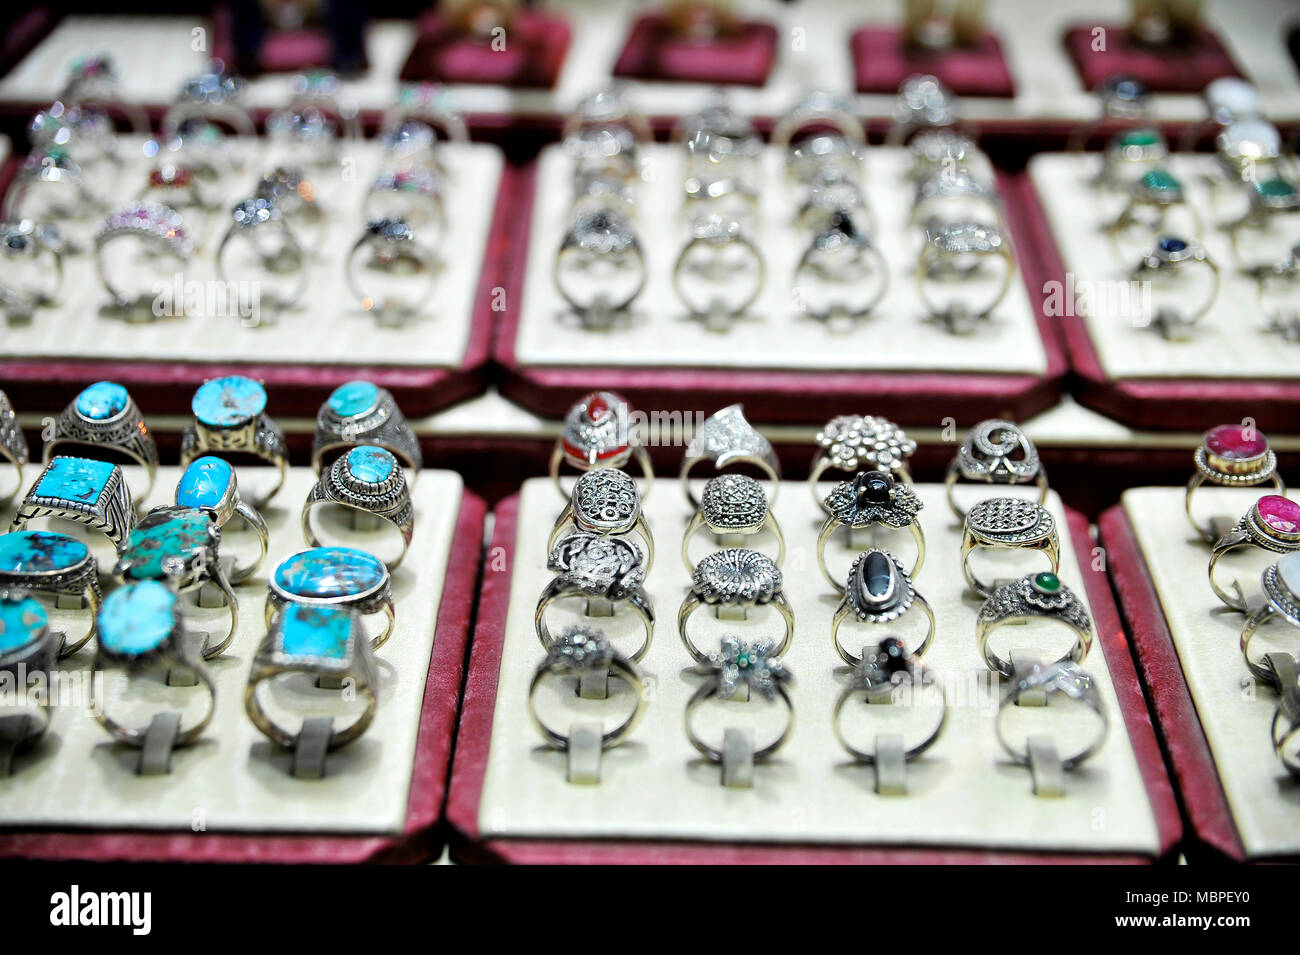 Jewelery exhibition in the bazaar, Esfahan - Iran - Stock Image